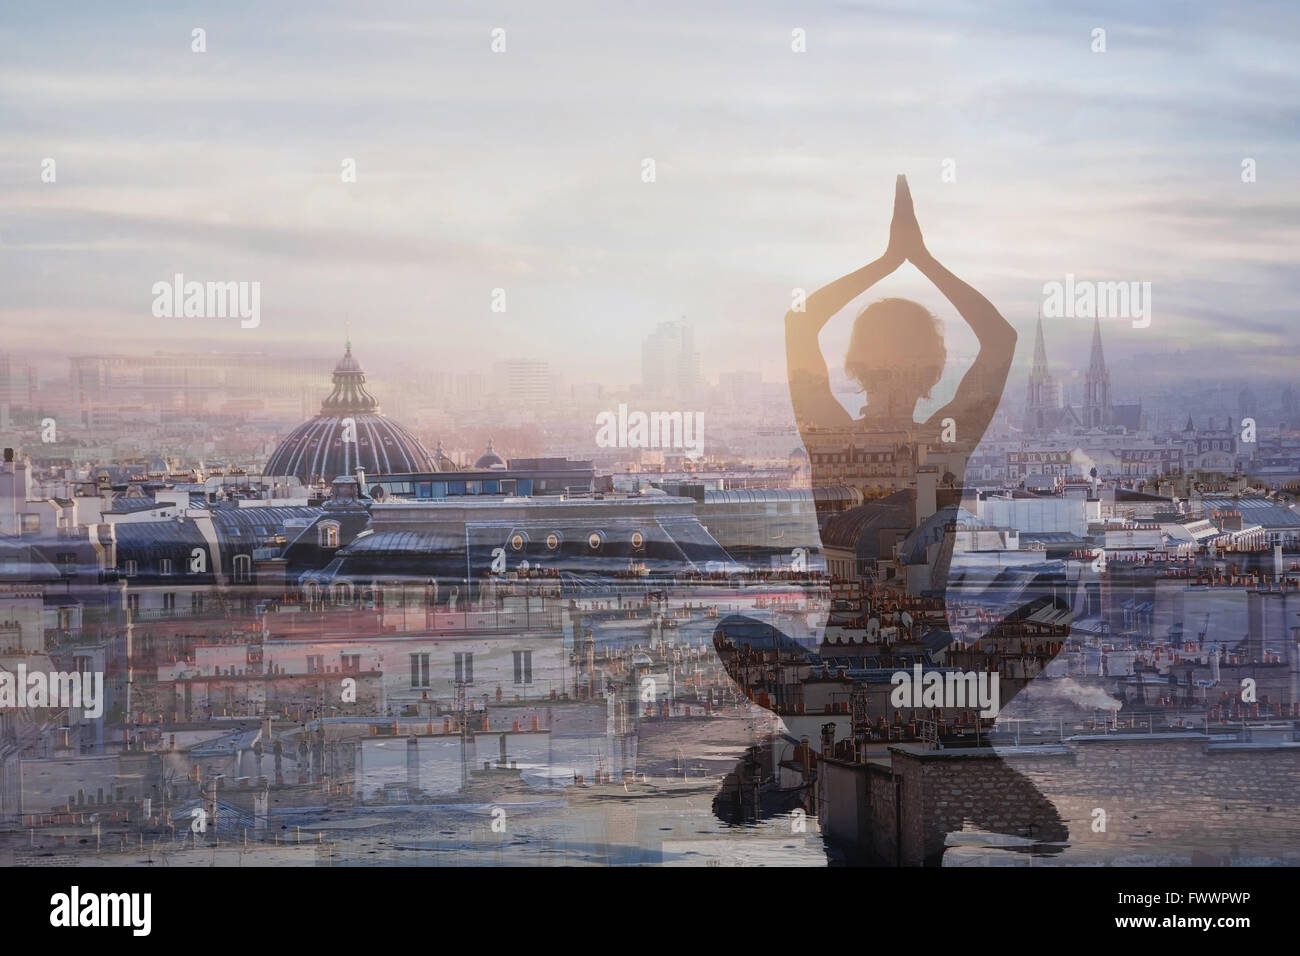 yoga and meditation in big city, double exposure, mindfulness concept, harmony in life - Stock Image